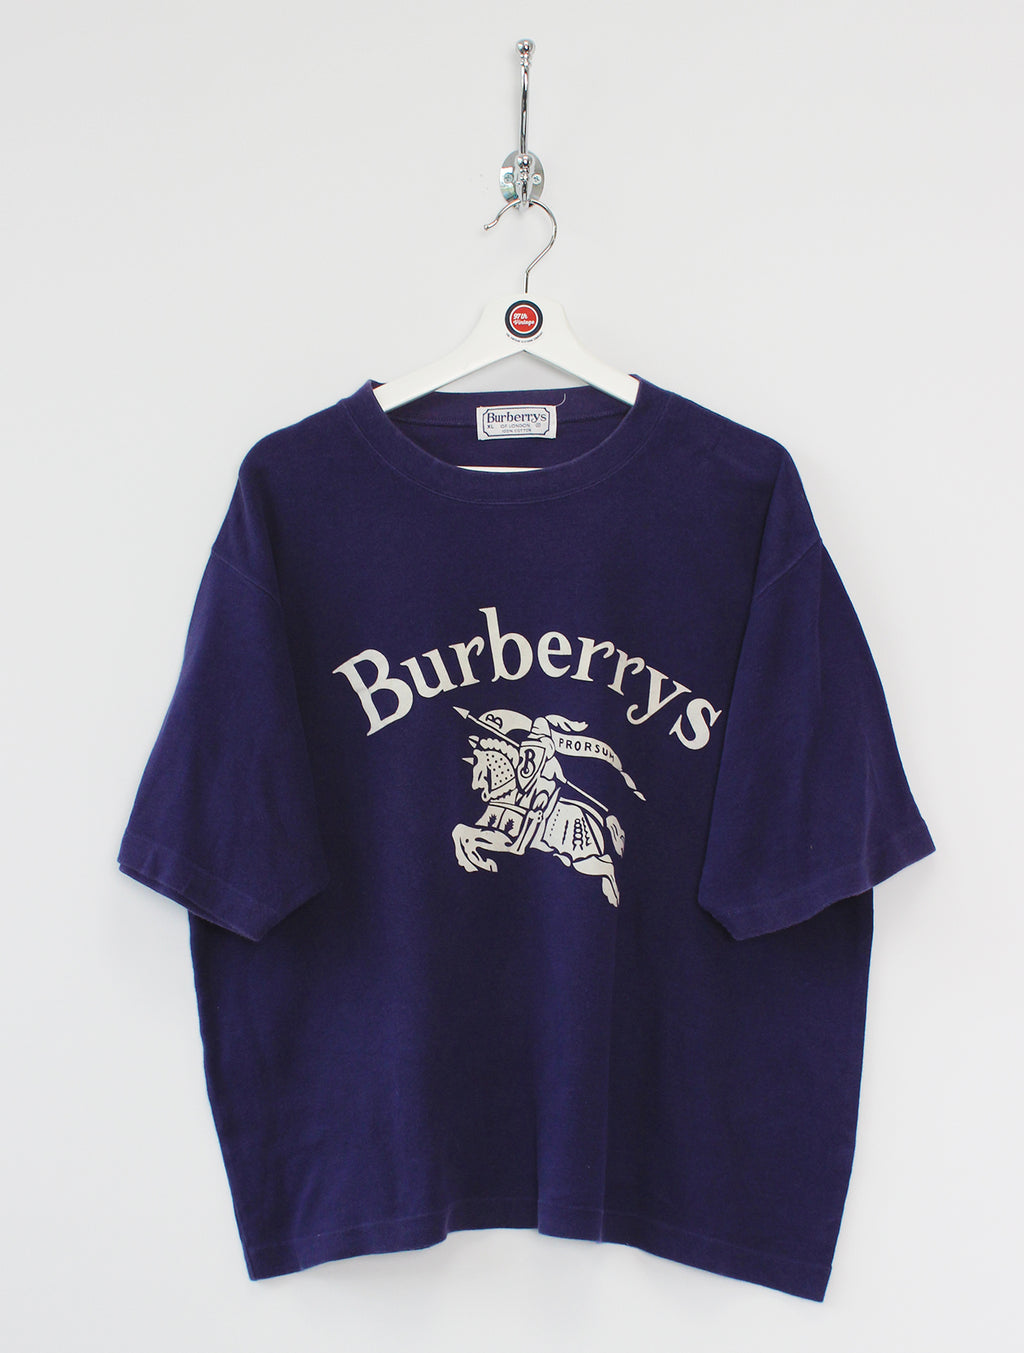 Women's Burberry T-Shirt (XL)